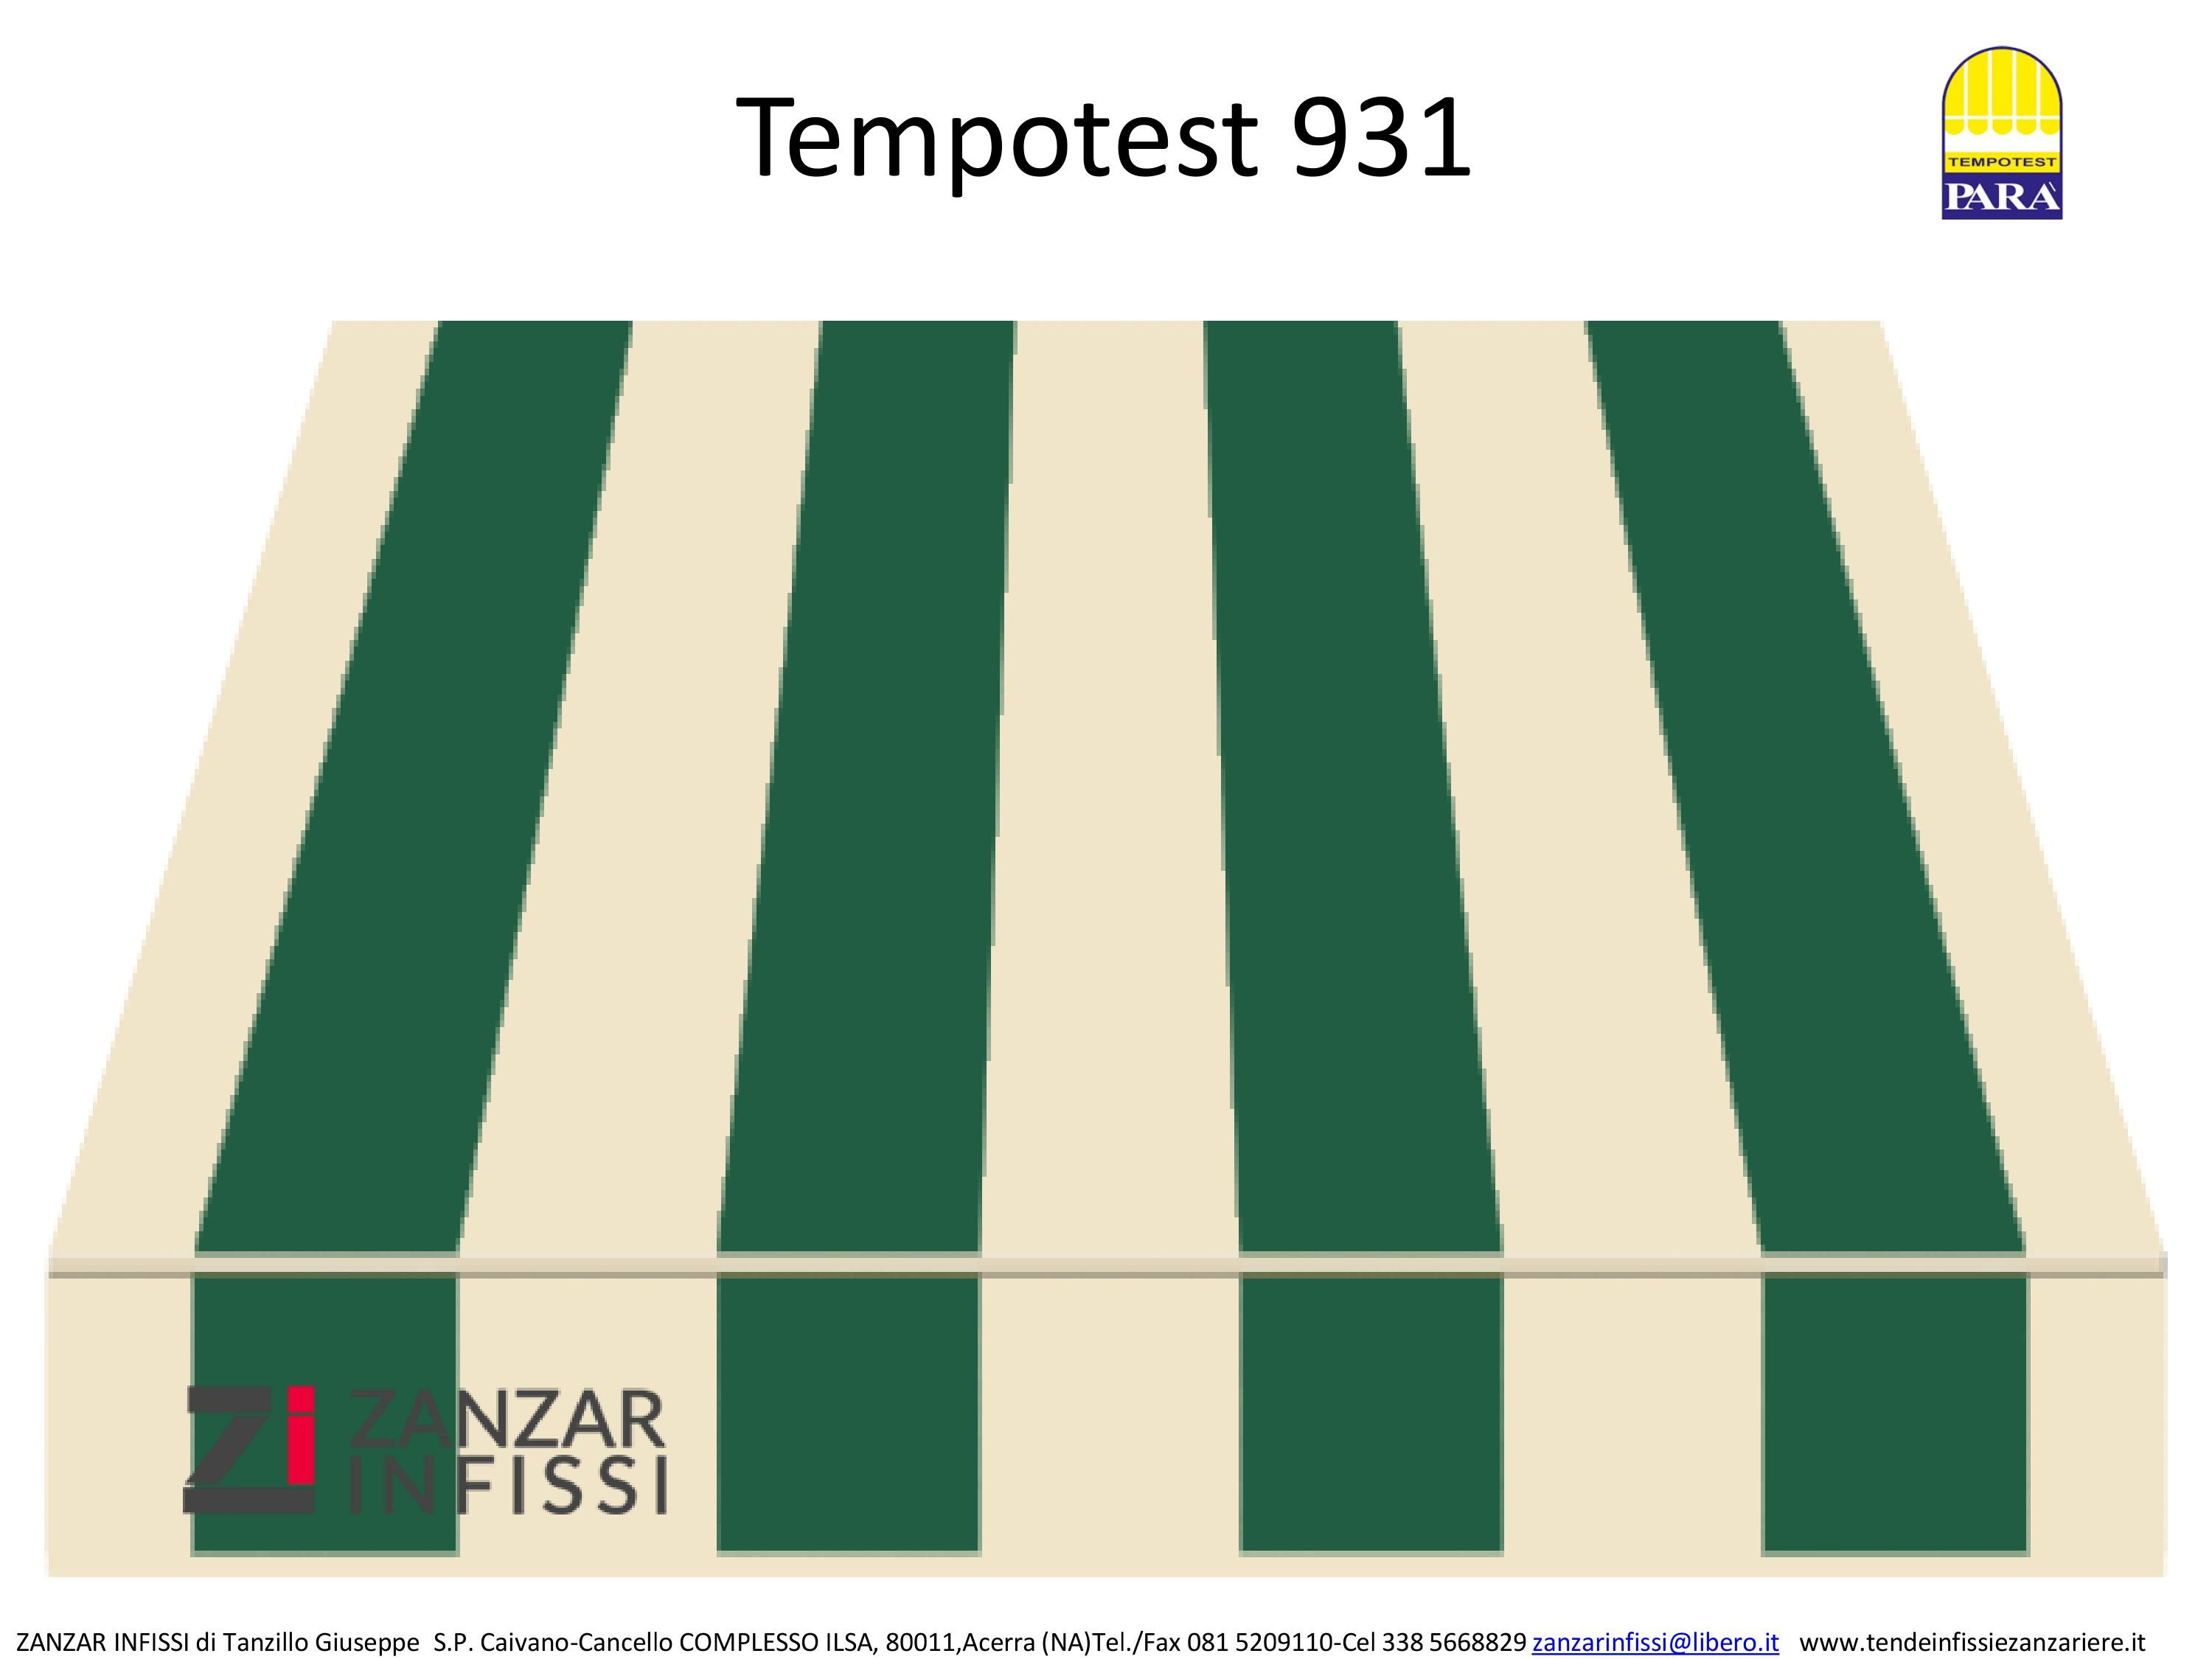 Tempotest 931